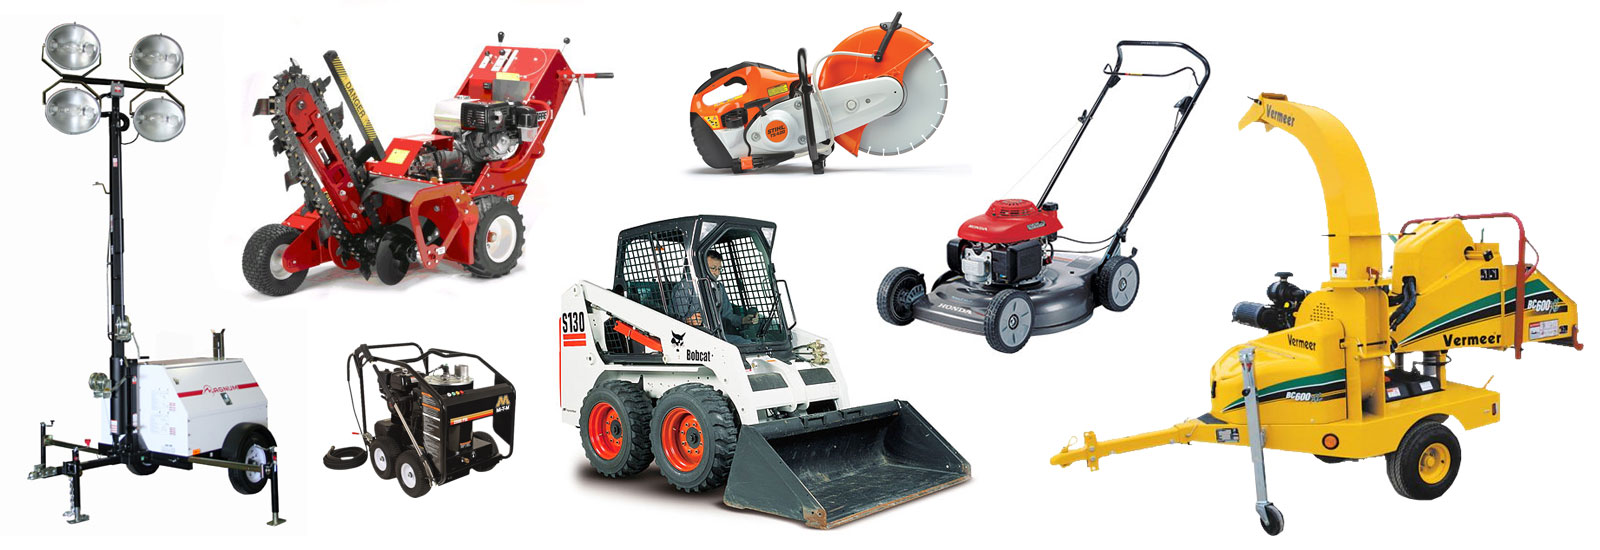 Equipment & Tool Rentals in the Greater Contra Costa Area